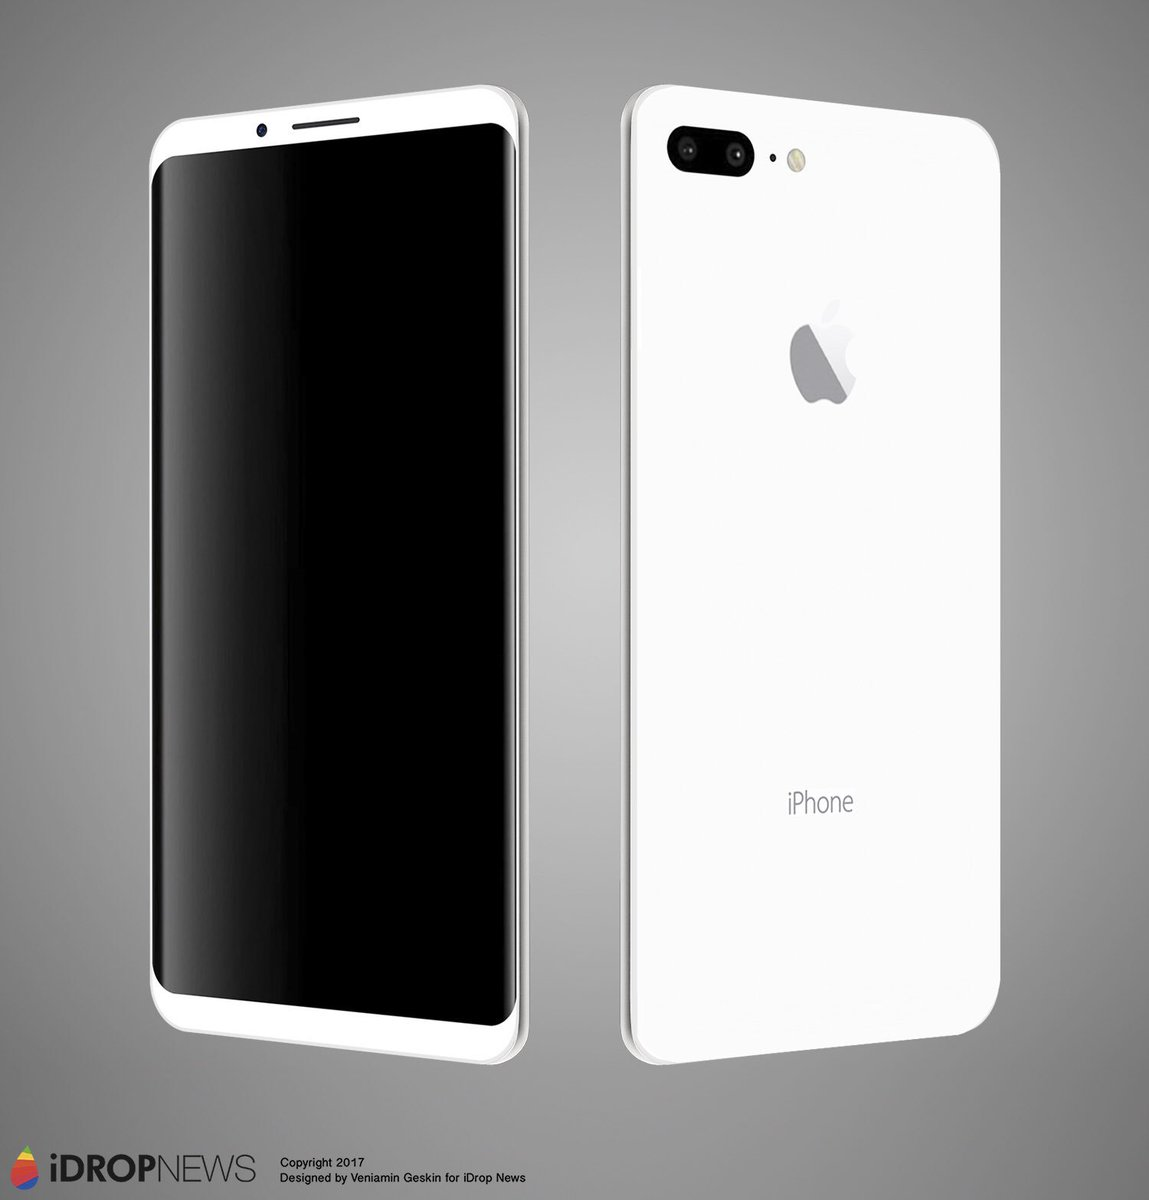 Ben Geskin On Twitter Latest IPhone 8 Concept Your Thoughts Will You Be Satisfied With This Design IPhone8